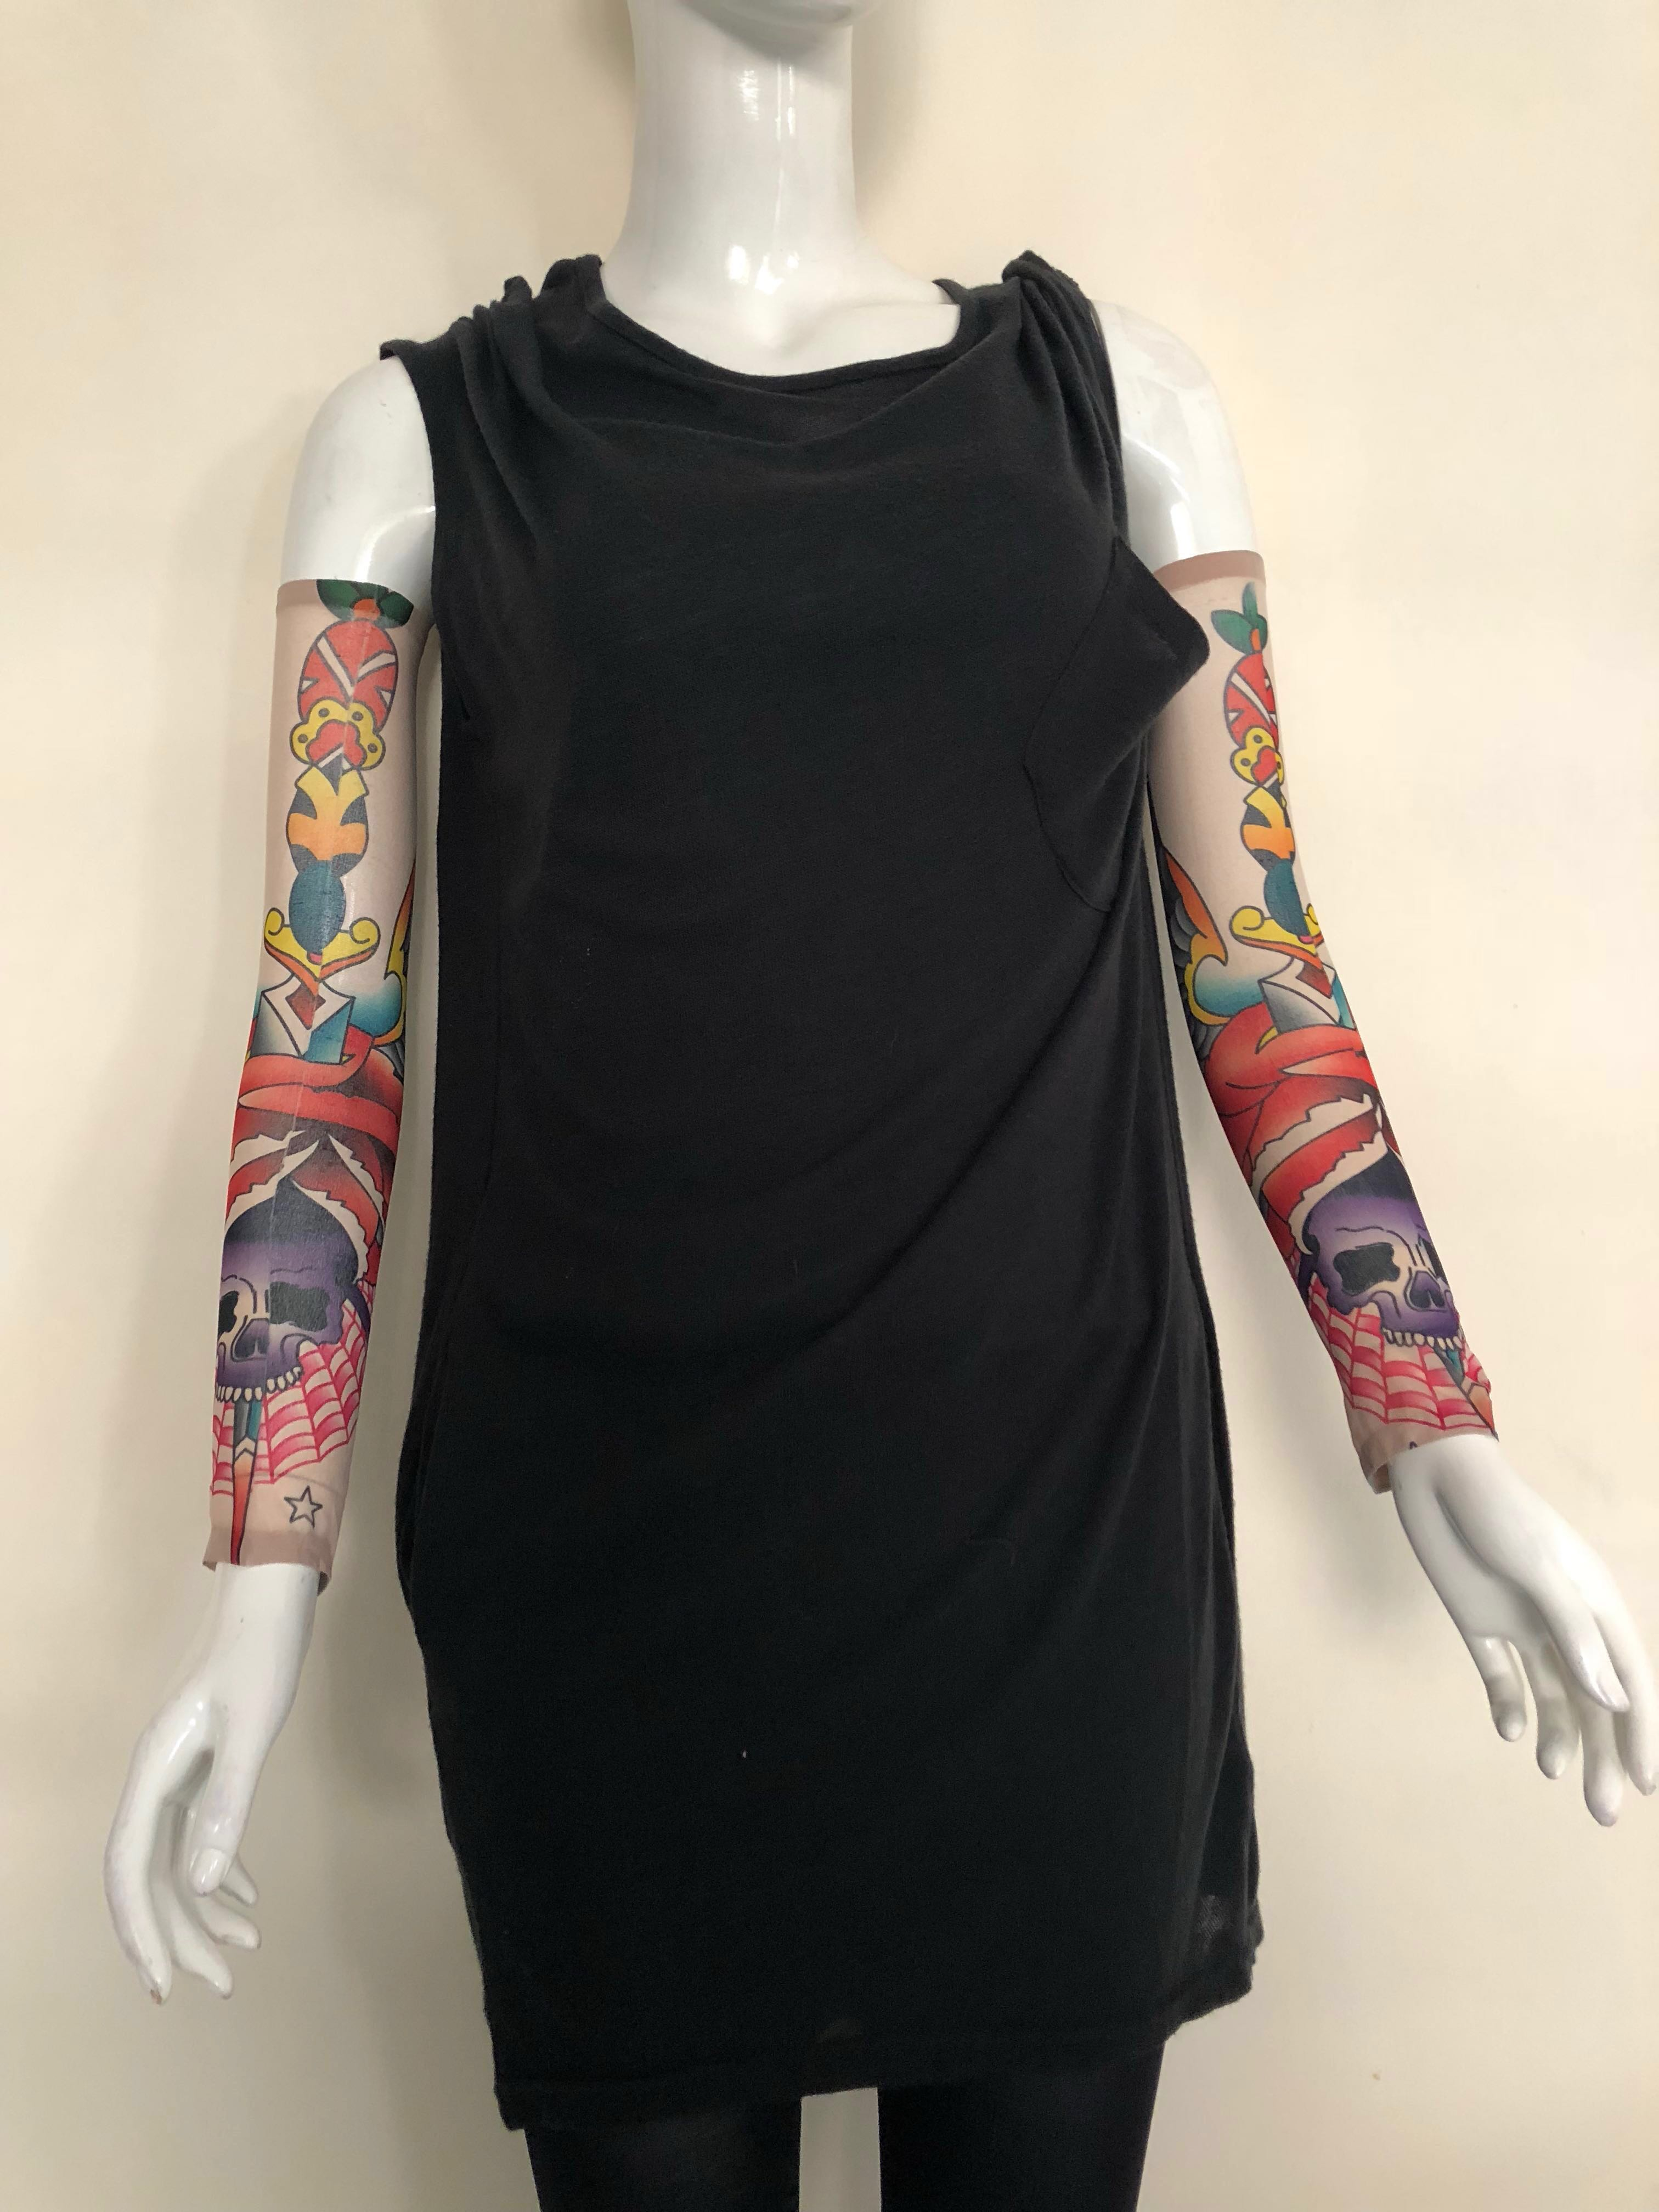 Zhoelux Tattoo Arm Sleeves Arm Socks Arm Cover Hand Gloves